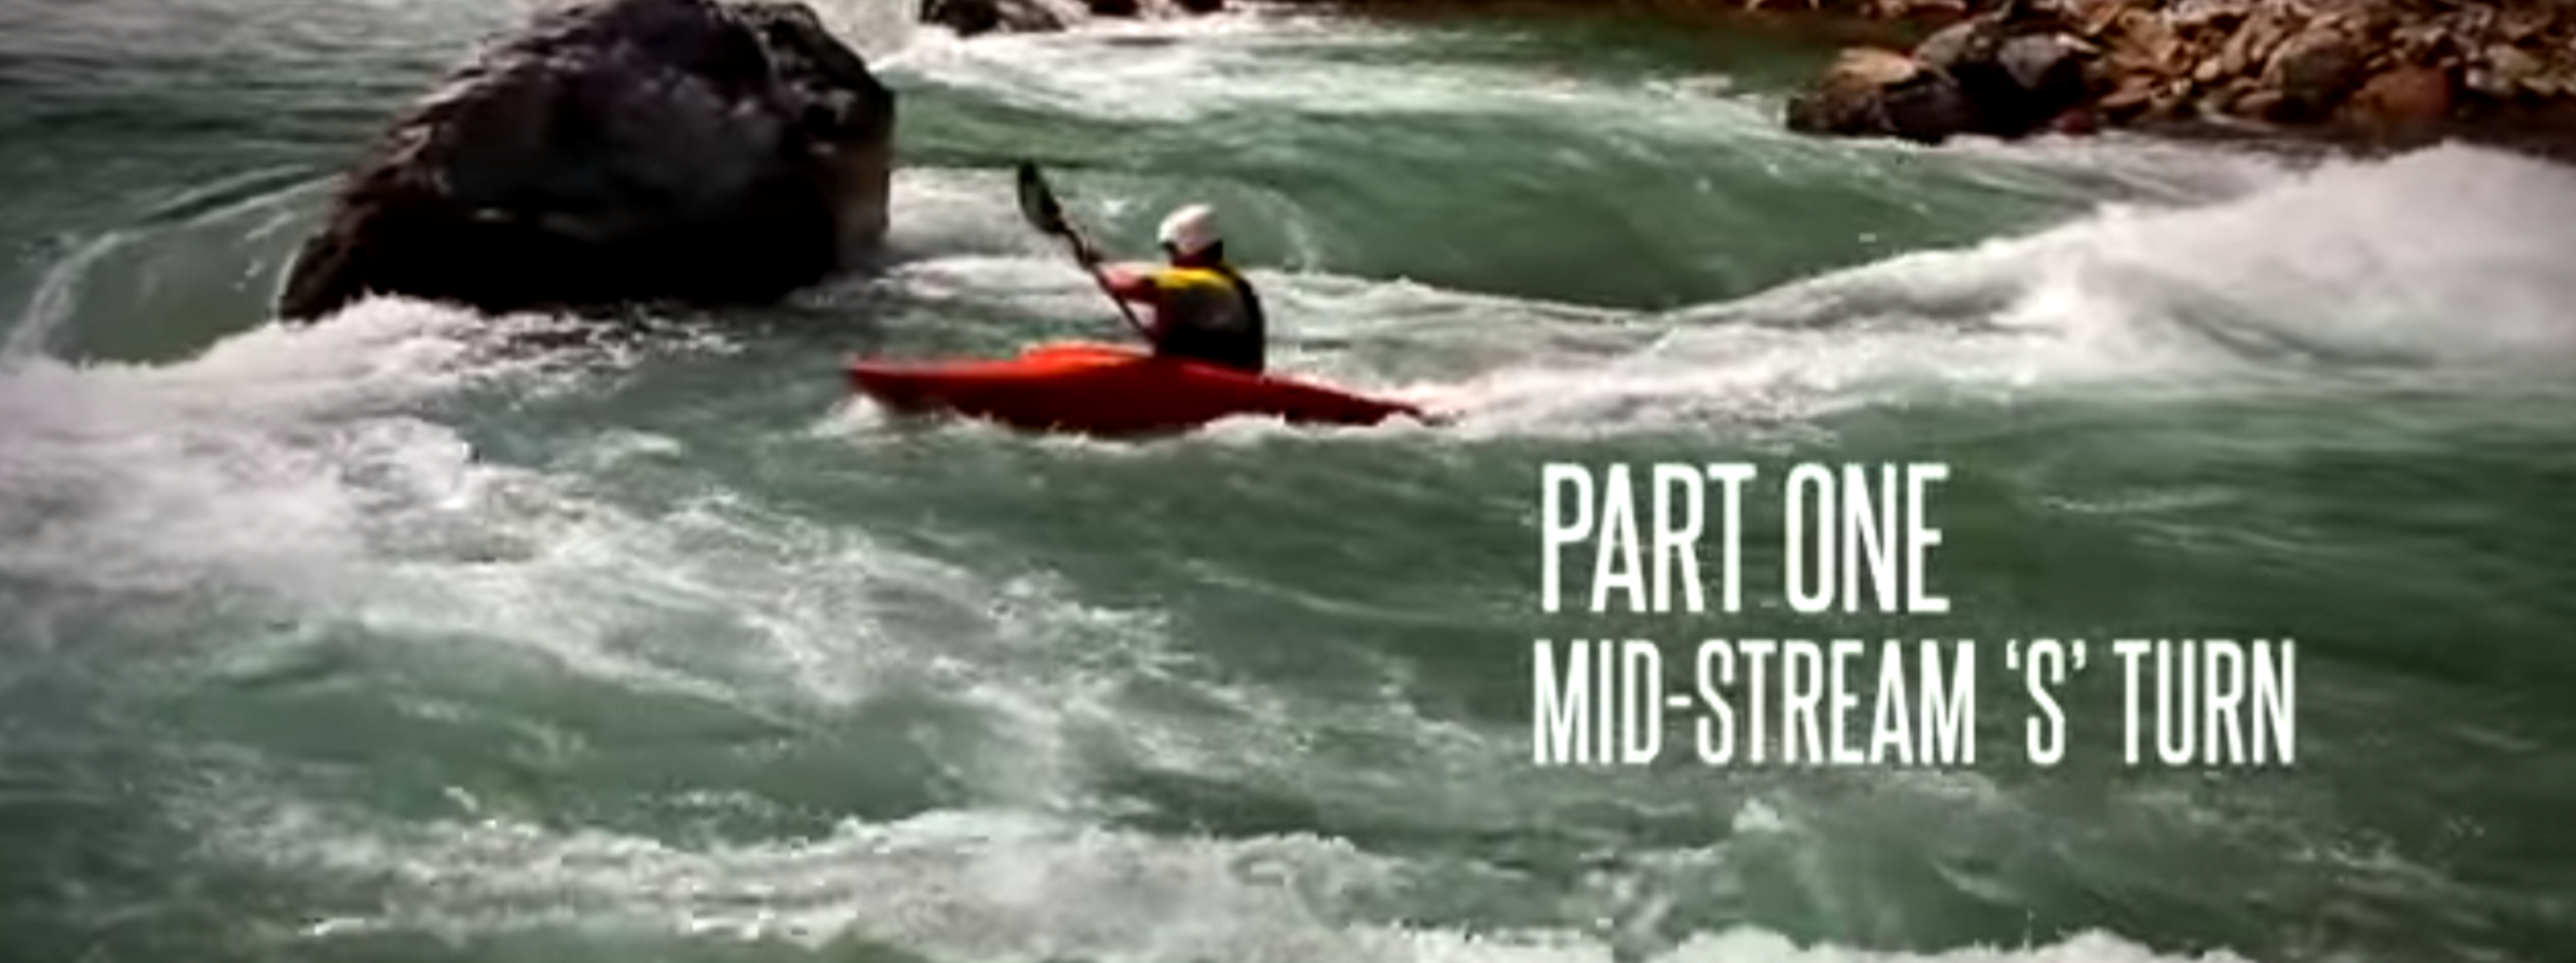 How to do an S-Turn - Part 1 - Midstream - Intermediate Kayak Instructional Video